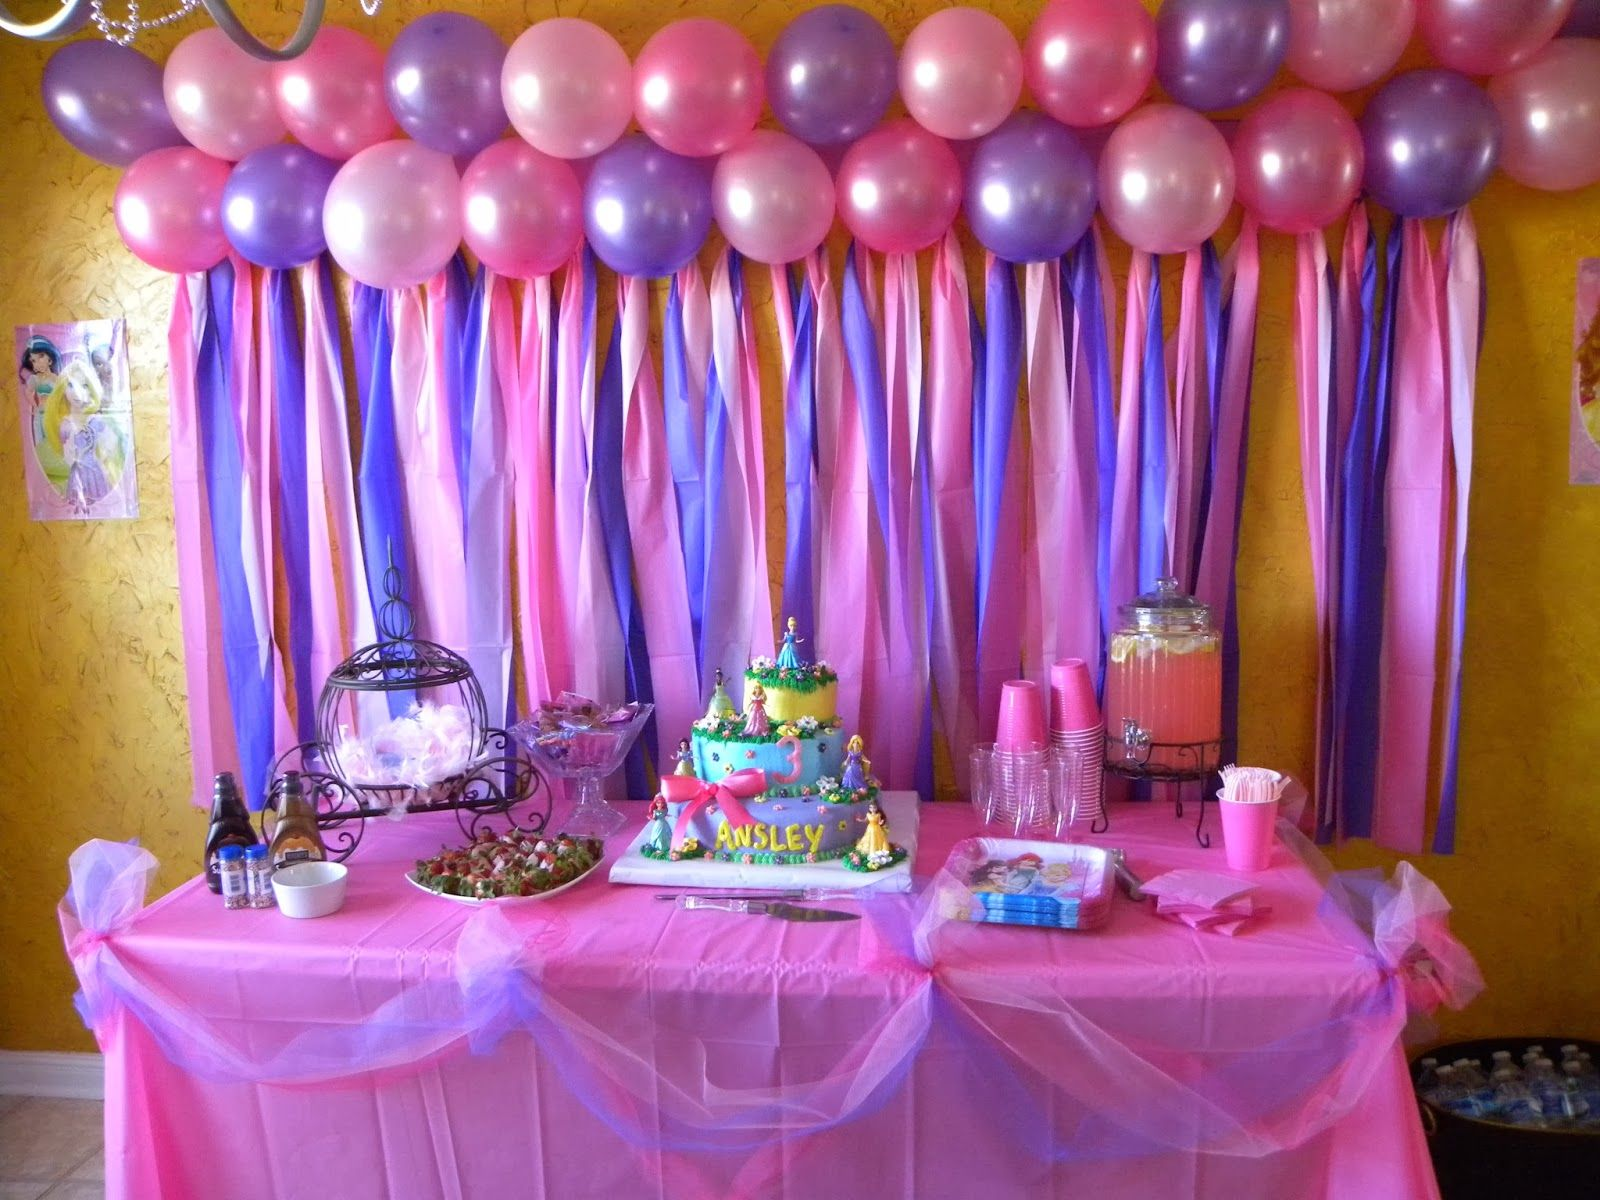 Pink Birthday Cake Decoration Ideas : Disney Princess Birthday. Cake table Ansley s 3rd ...